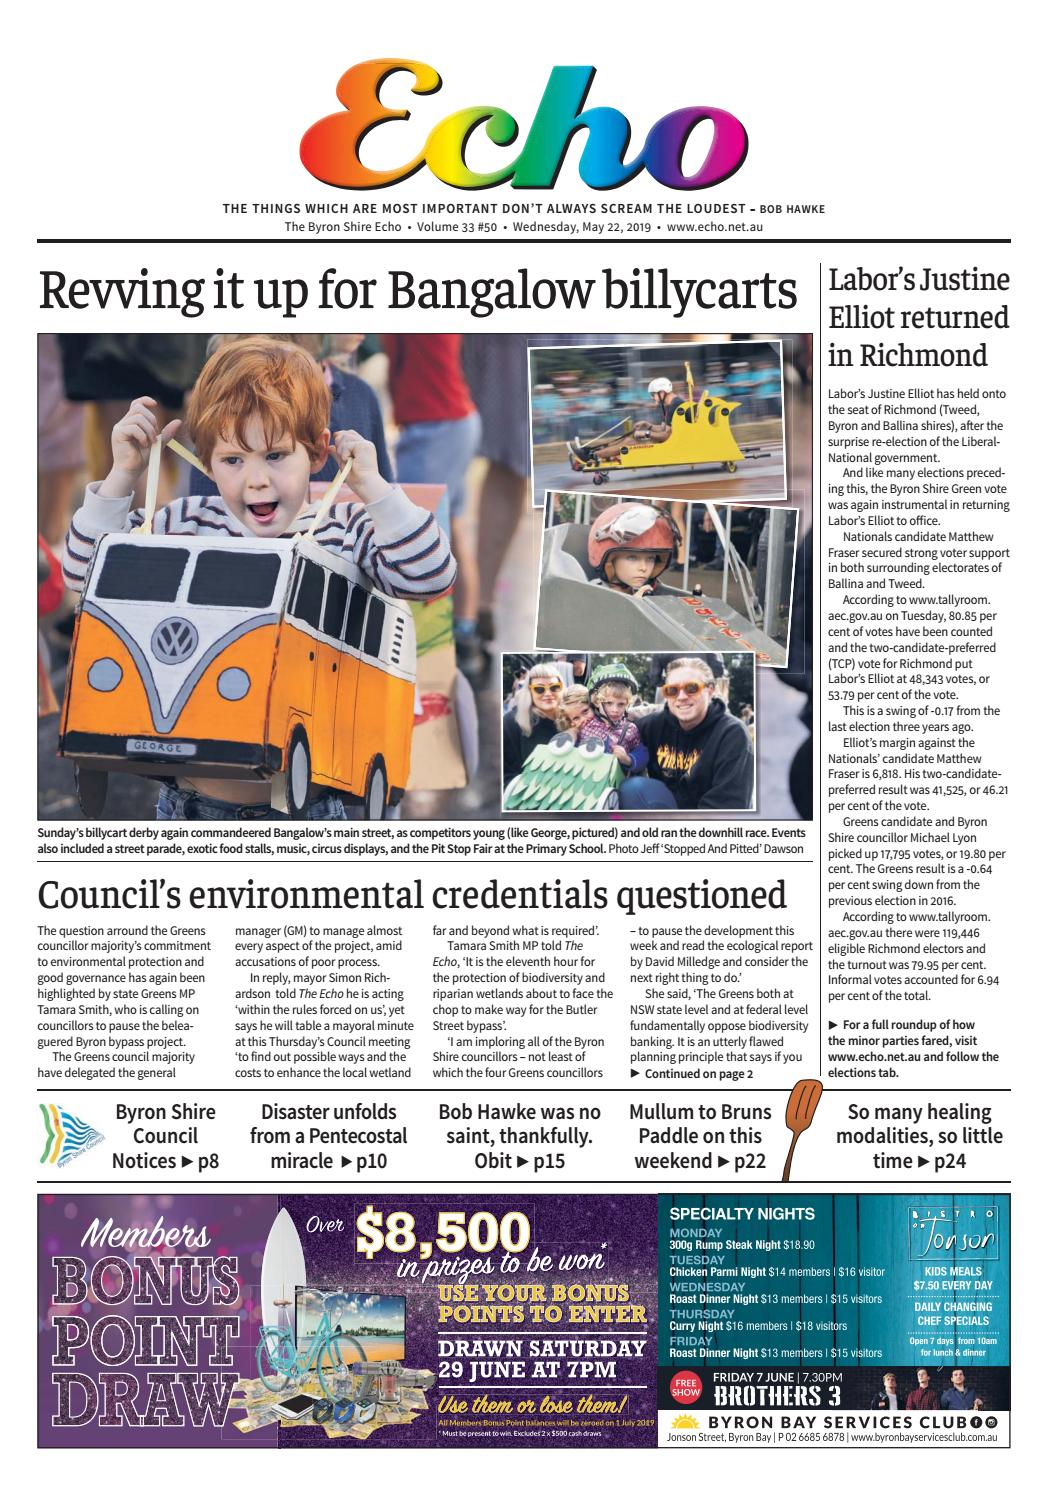 The Byron Shire Echo – Issue 33 50 – May 22, 2019 by Echo